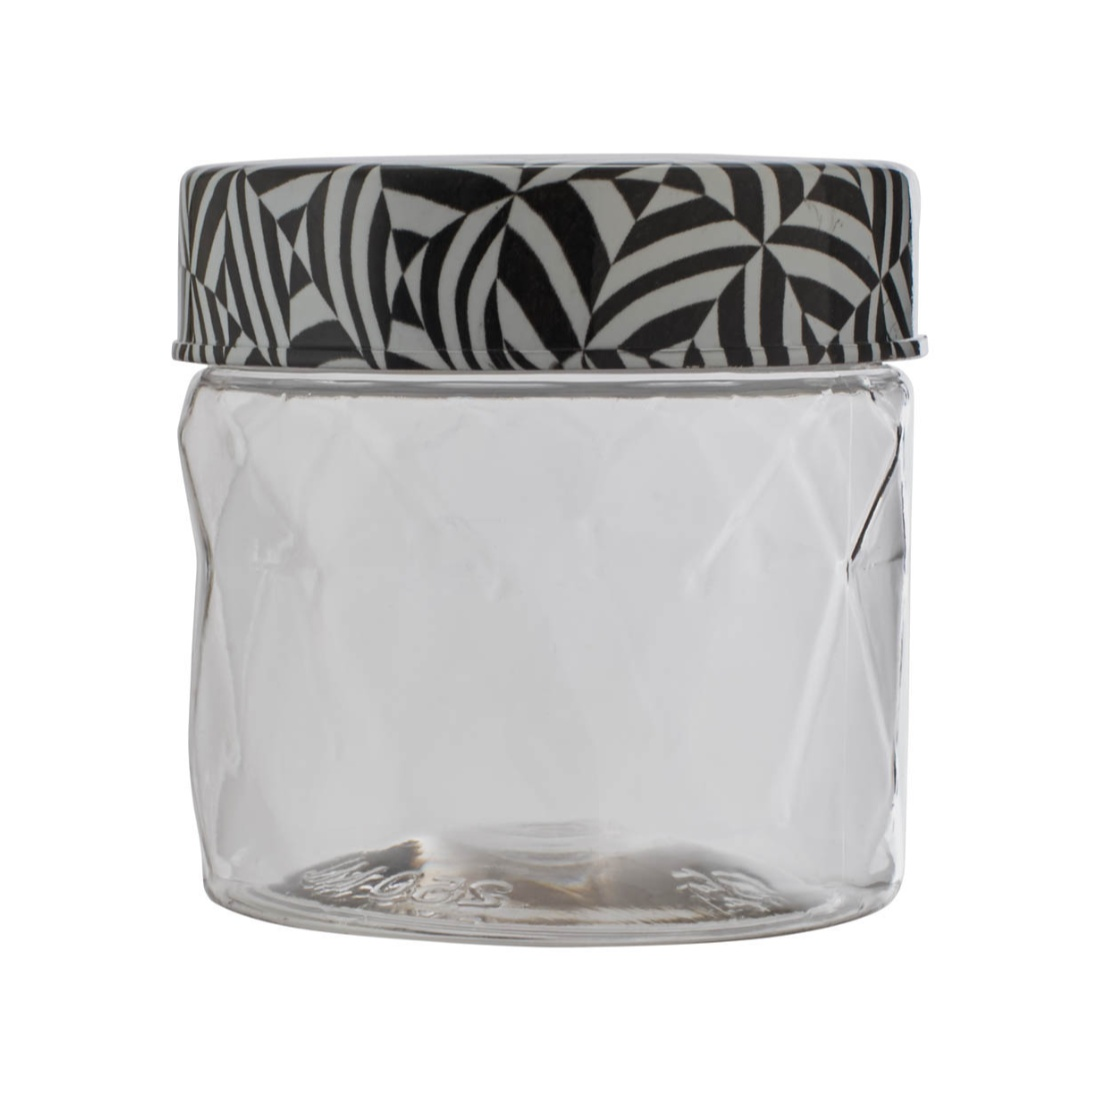 Clark Container 250 ml Plastic Containers in Transparent Container & Black Whitelid Colour by Living Essence